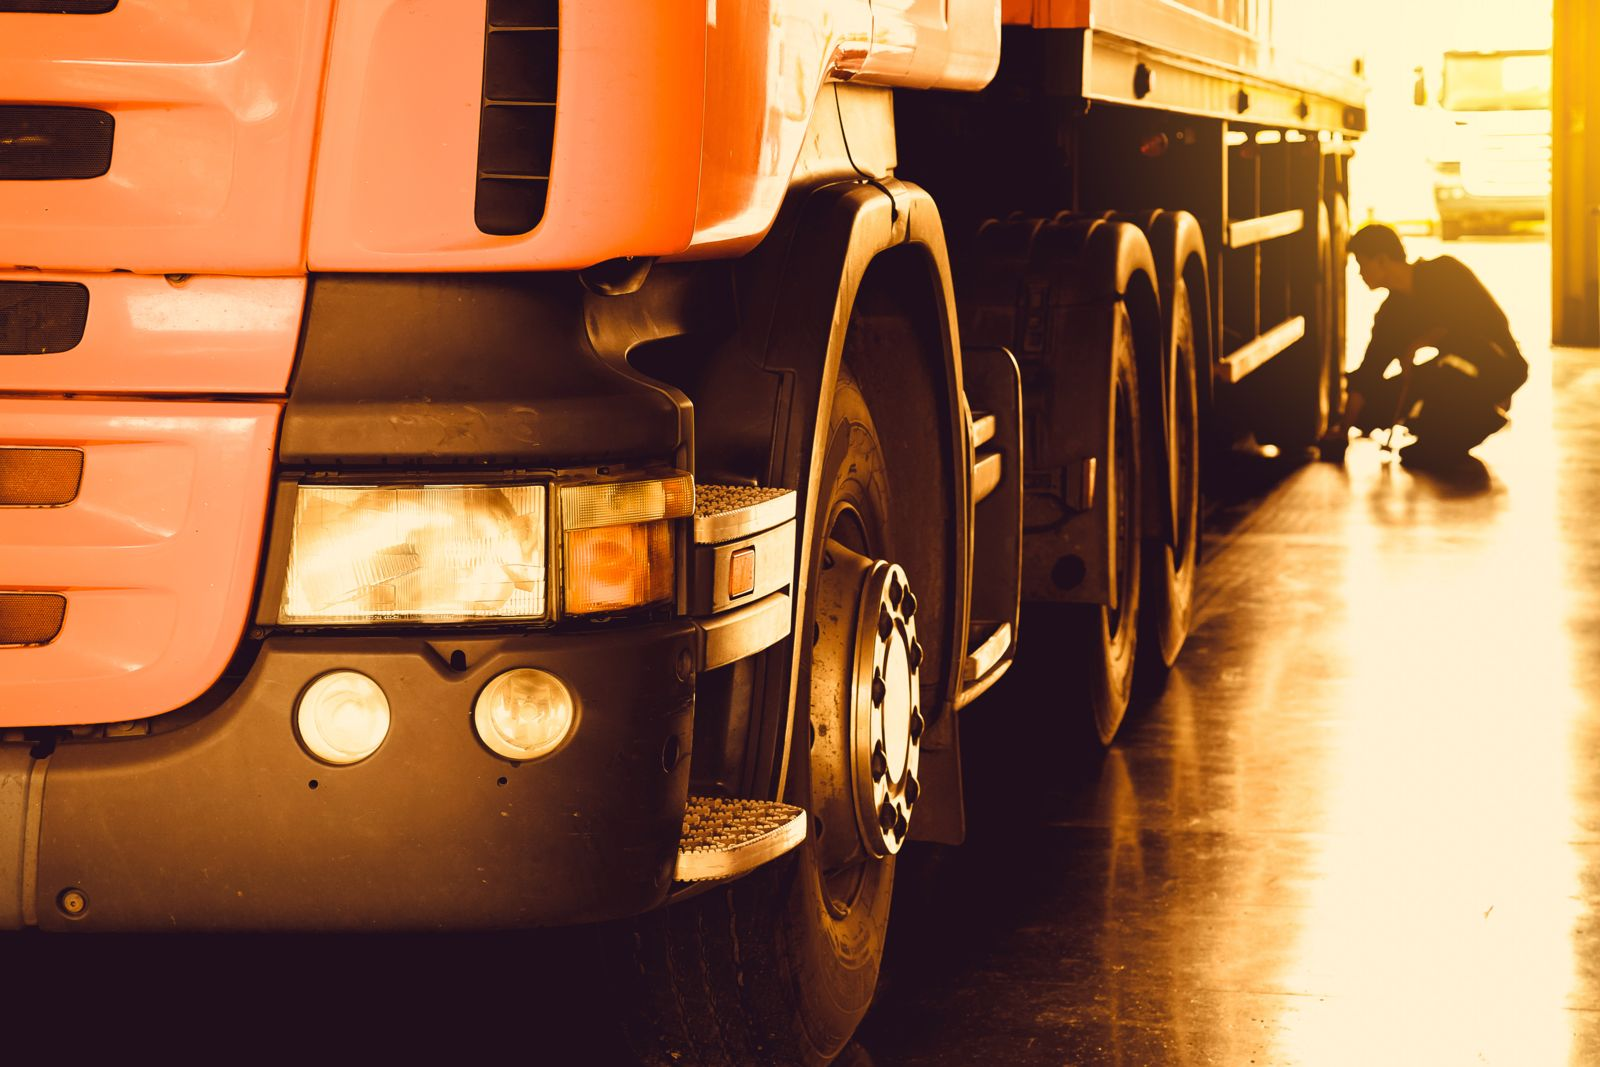 Truck company inspection requirements.